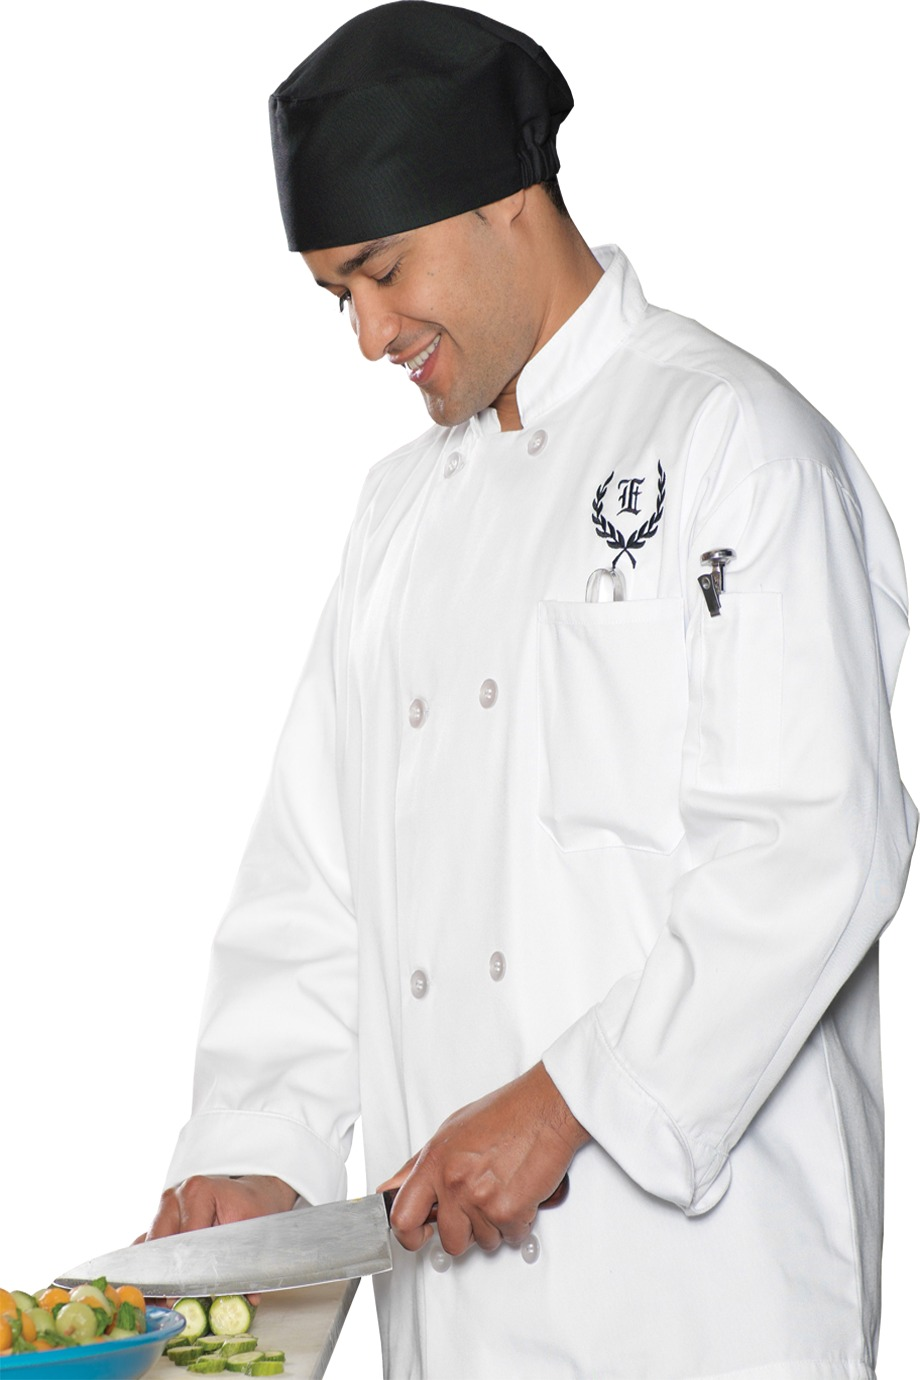 Edwards Garment 3300 - Chef Coat